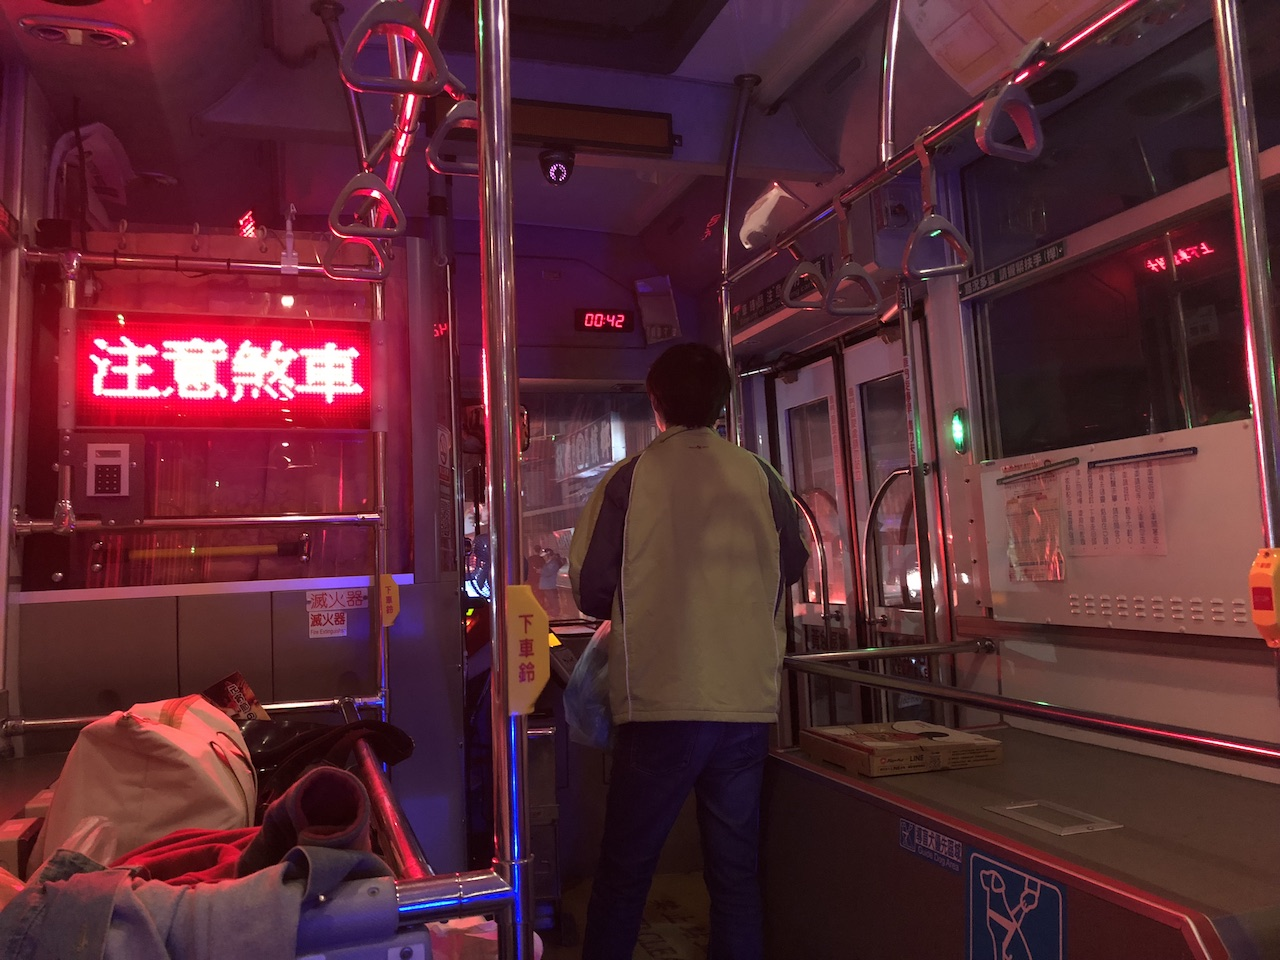 Ensui bus taiwan 001